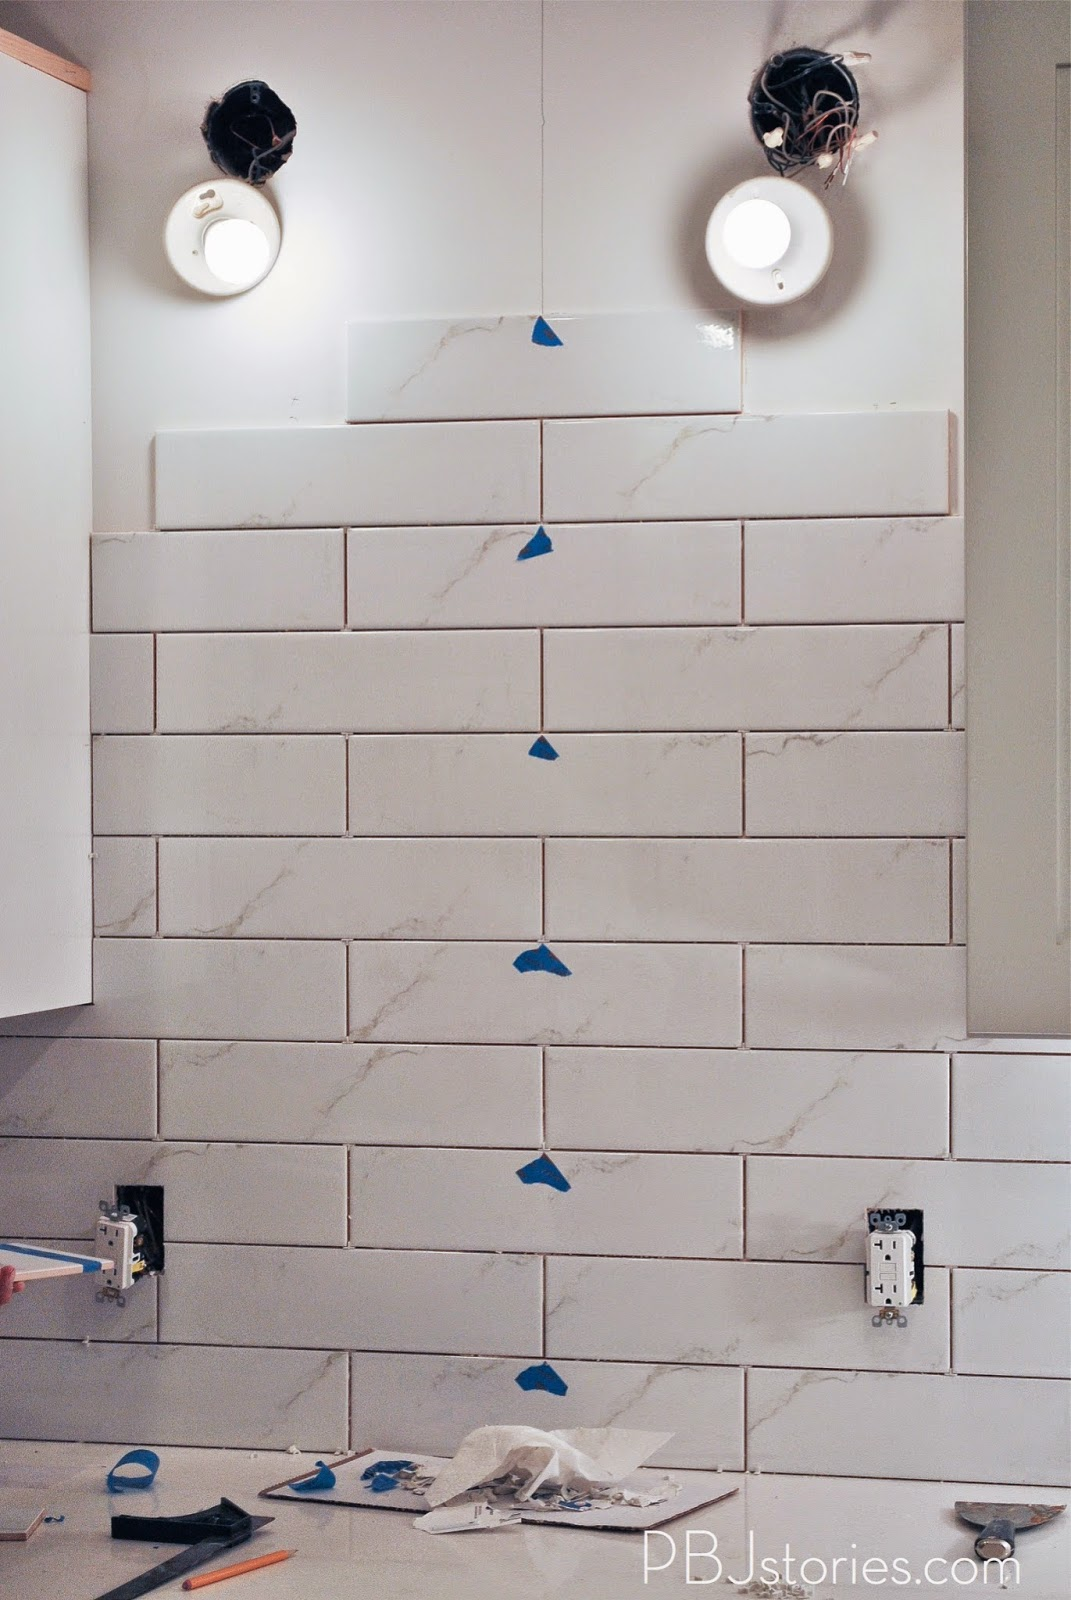 Pbjstories installing subway tile for kitchen backsplash similar to how we cut the outlet tiles we had to cut out the areas for the pendant lights it was a little more difficult since its a curved area dailygadgetfo Gallery